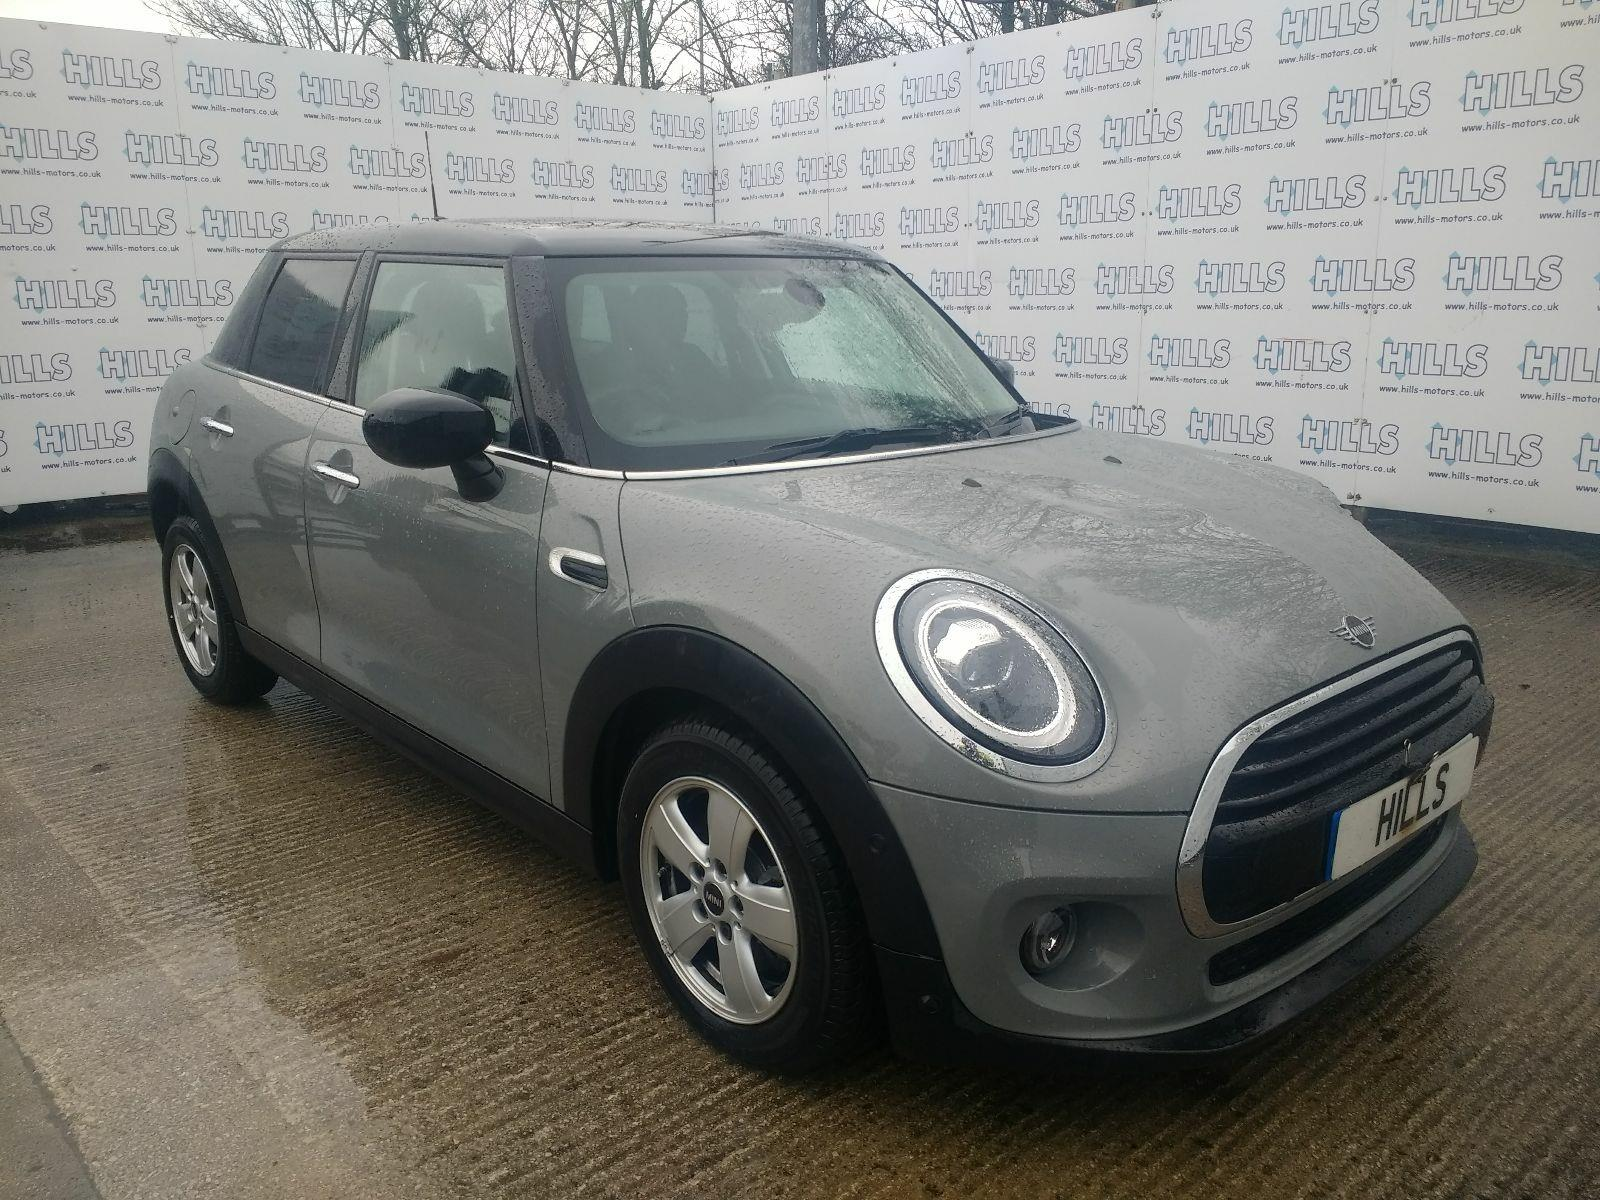 2019 MINI HATCH COOPER CLASSIC 1499cc TURBO Petrol Automatic 8 Speed 5 Door Hatchback